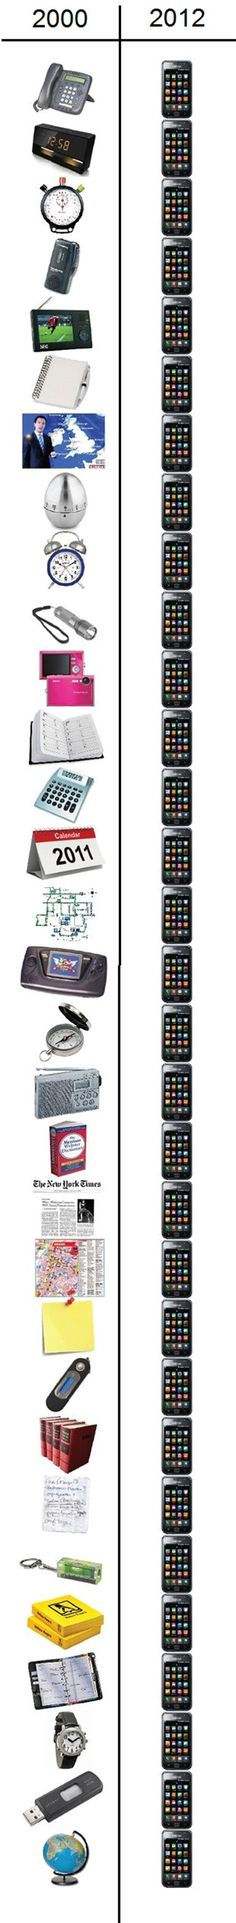 Gadgets in 2000 vs. Gadgets in 2012 funny game, tech, internet, pc related pictures, gamers, gaming, geek humor, pc geeks, computer humor, games, video games, pc games, game shop, gamer, internet humor, Tech humor, pc, internet, Tech, geek, nerd, internet geek, comic book, gadget, gamer geek, pop culture, funny, humor